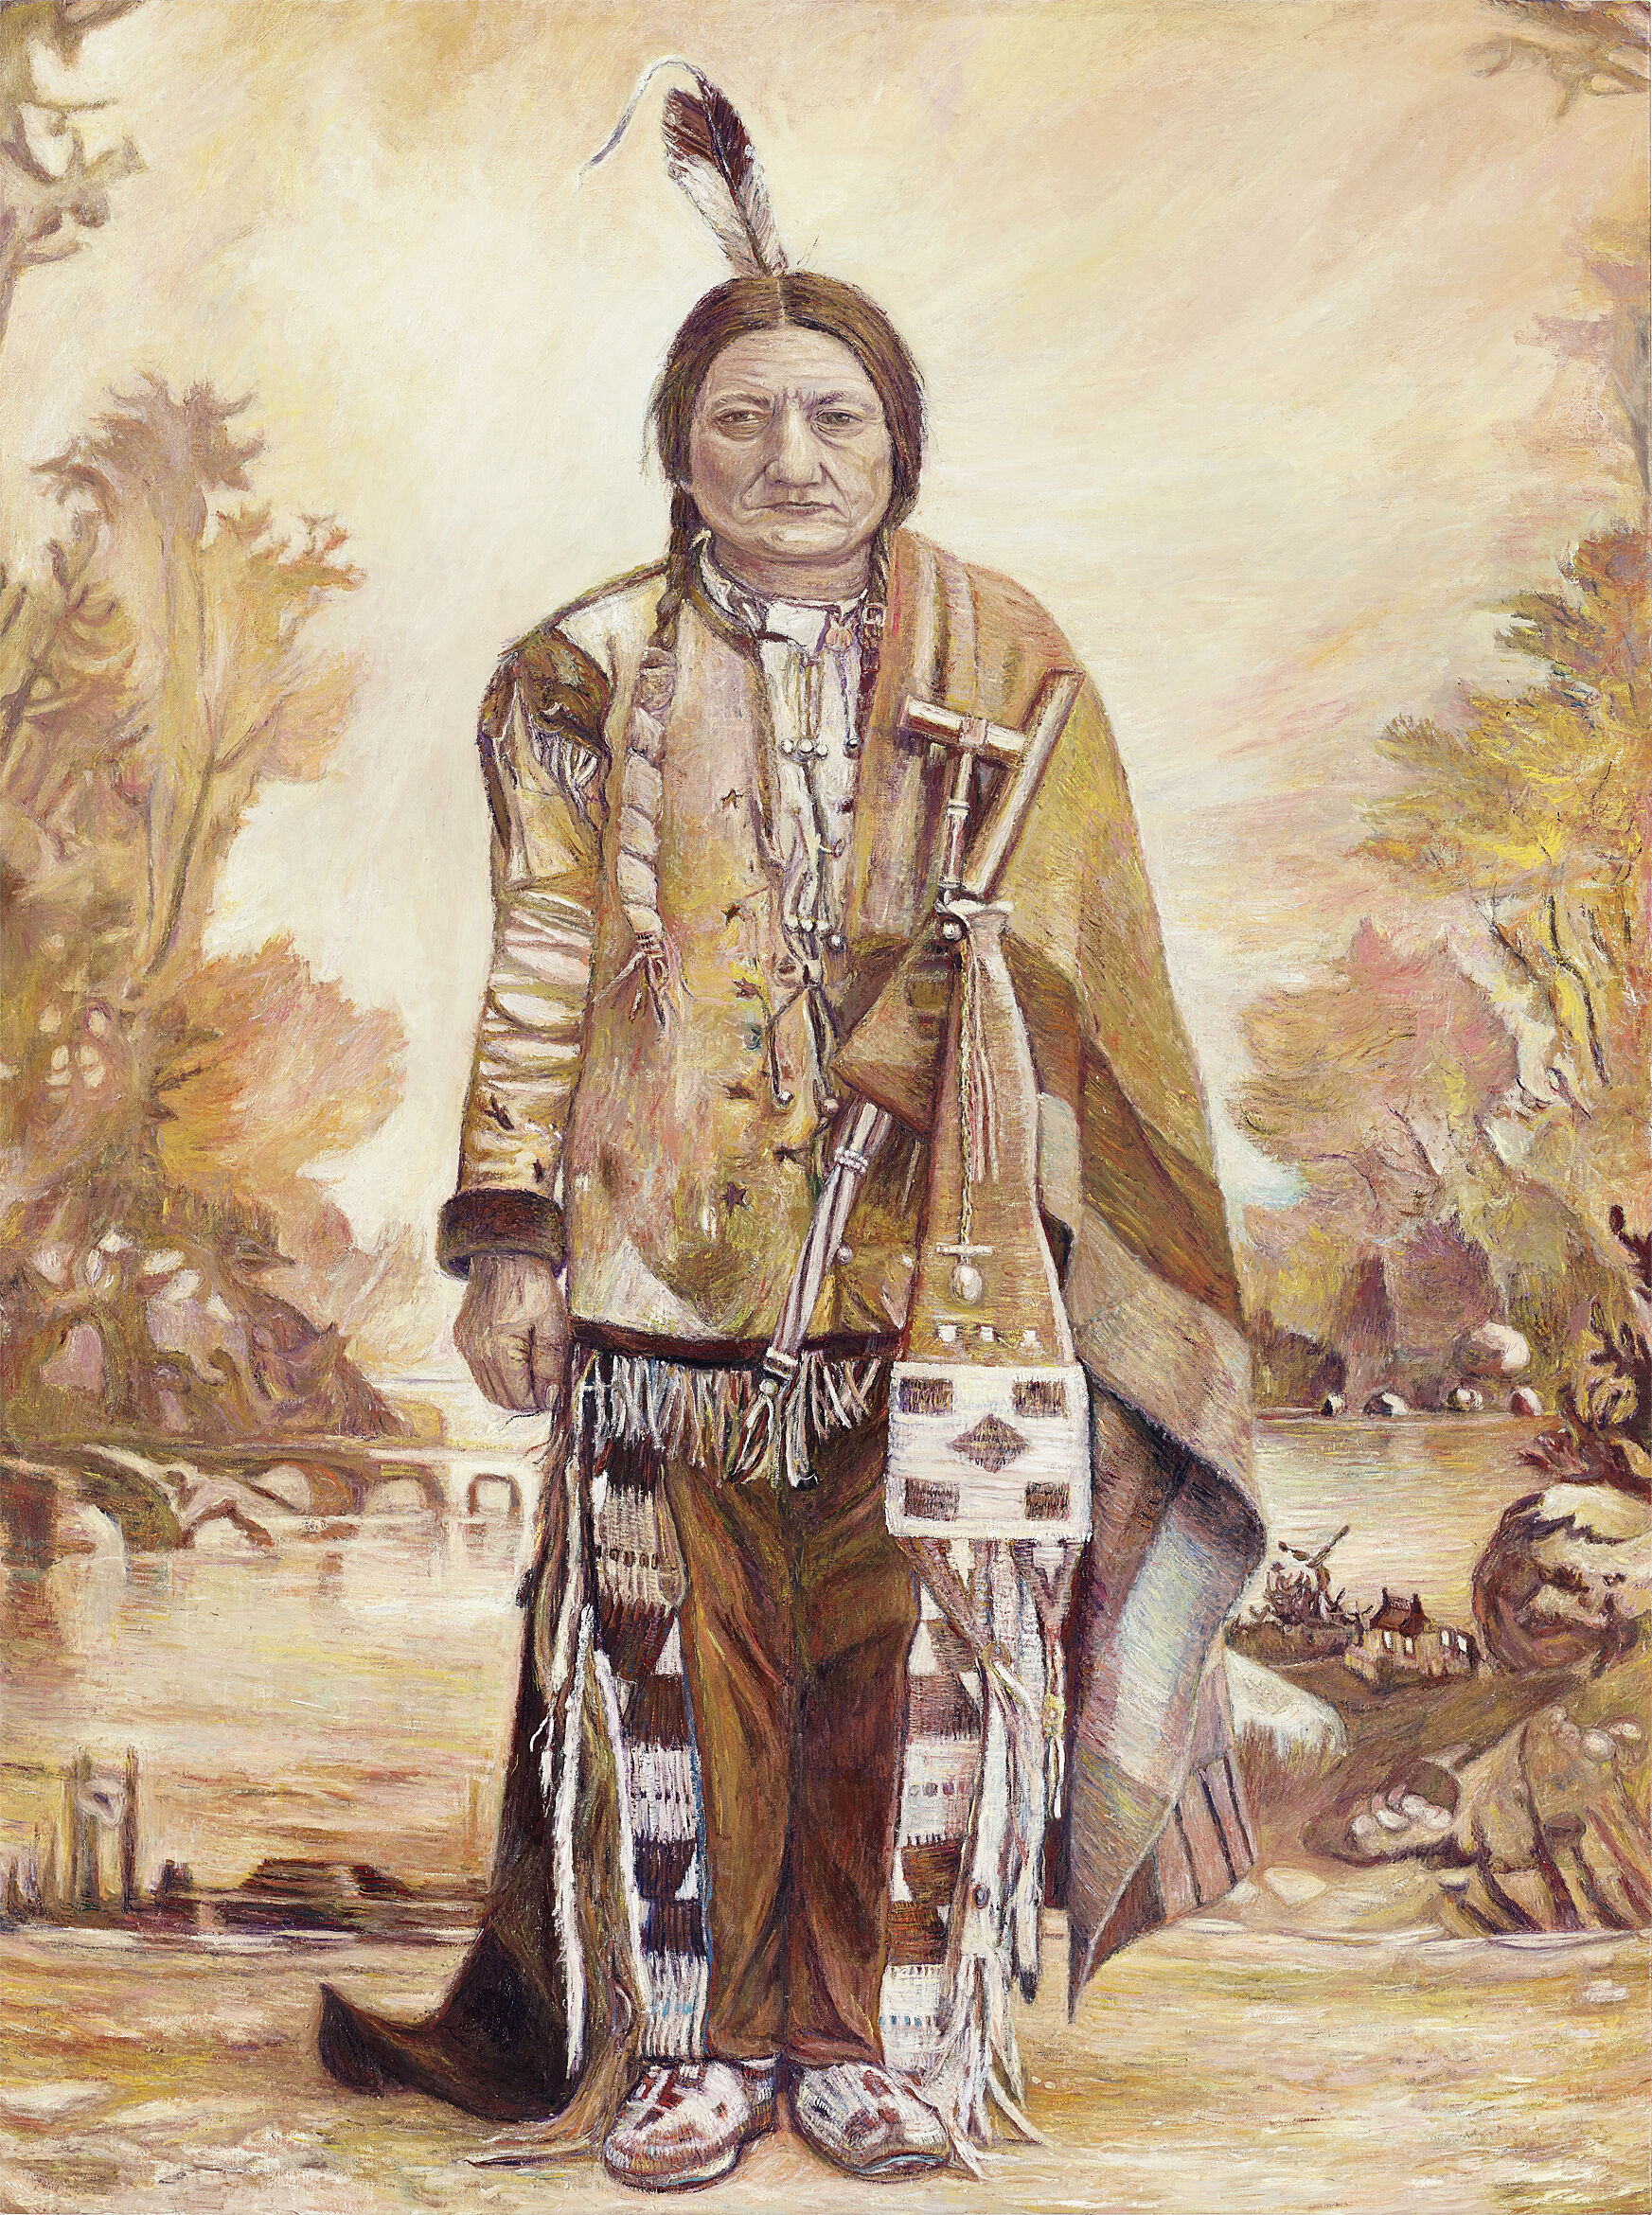 A painting of a person in native american clothing.